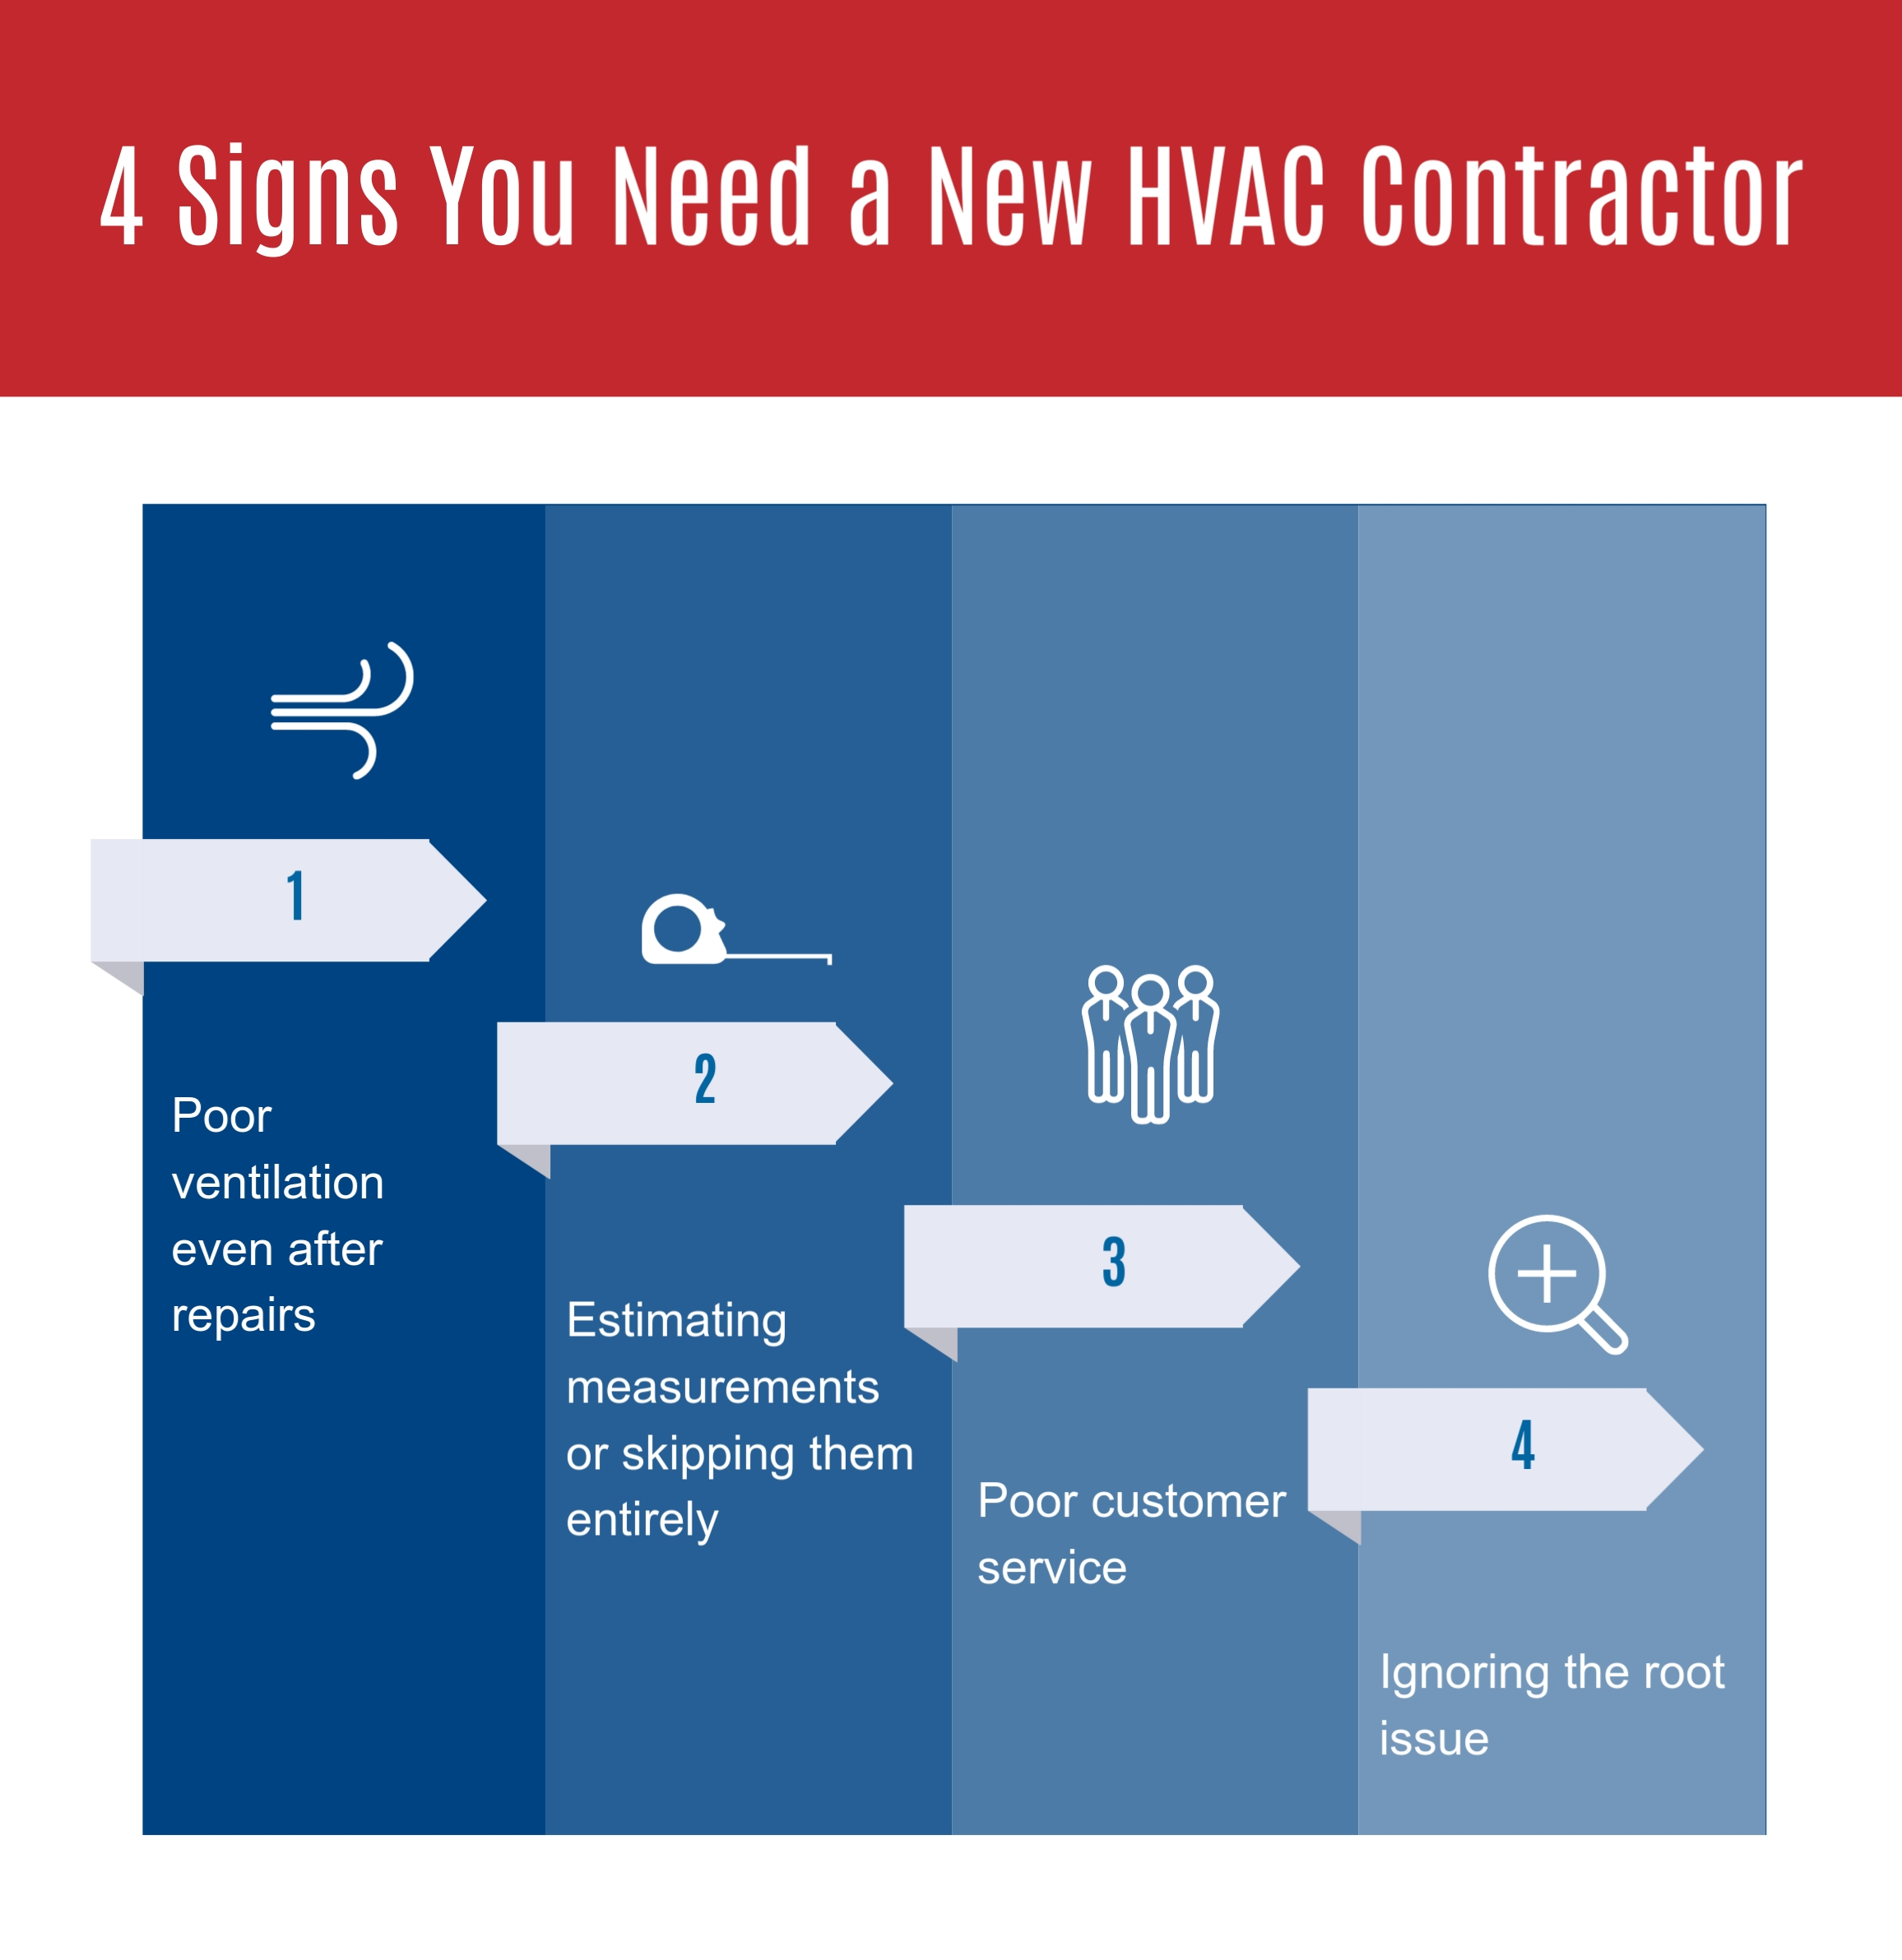 4 Signs You Need a New HVAC Contractor, The Training Center of Air Conditioning & Heating